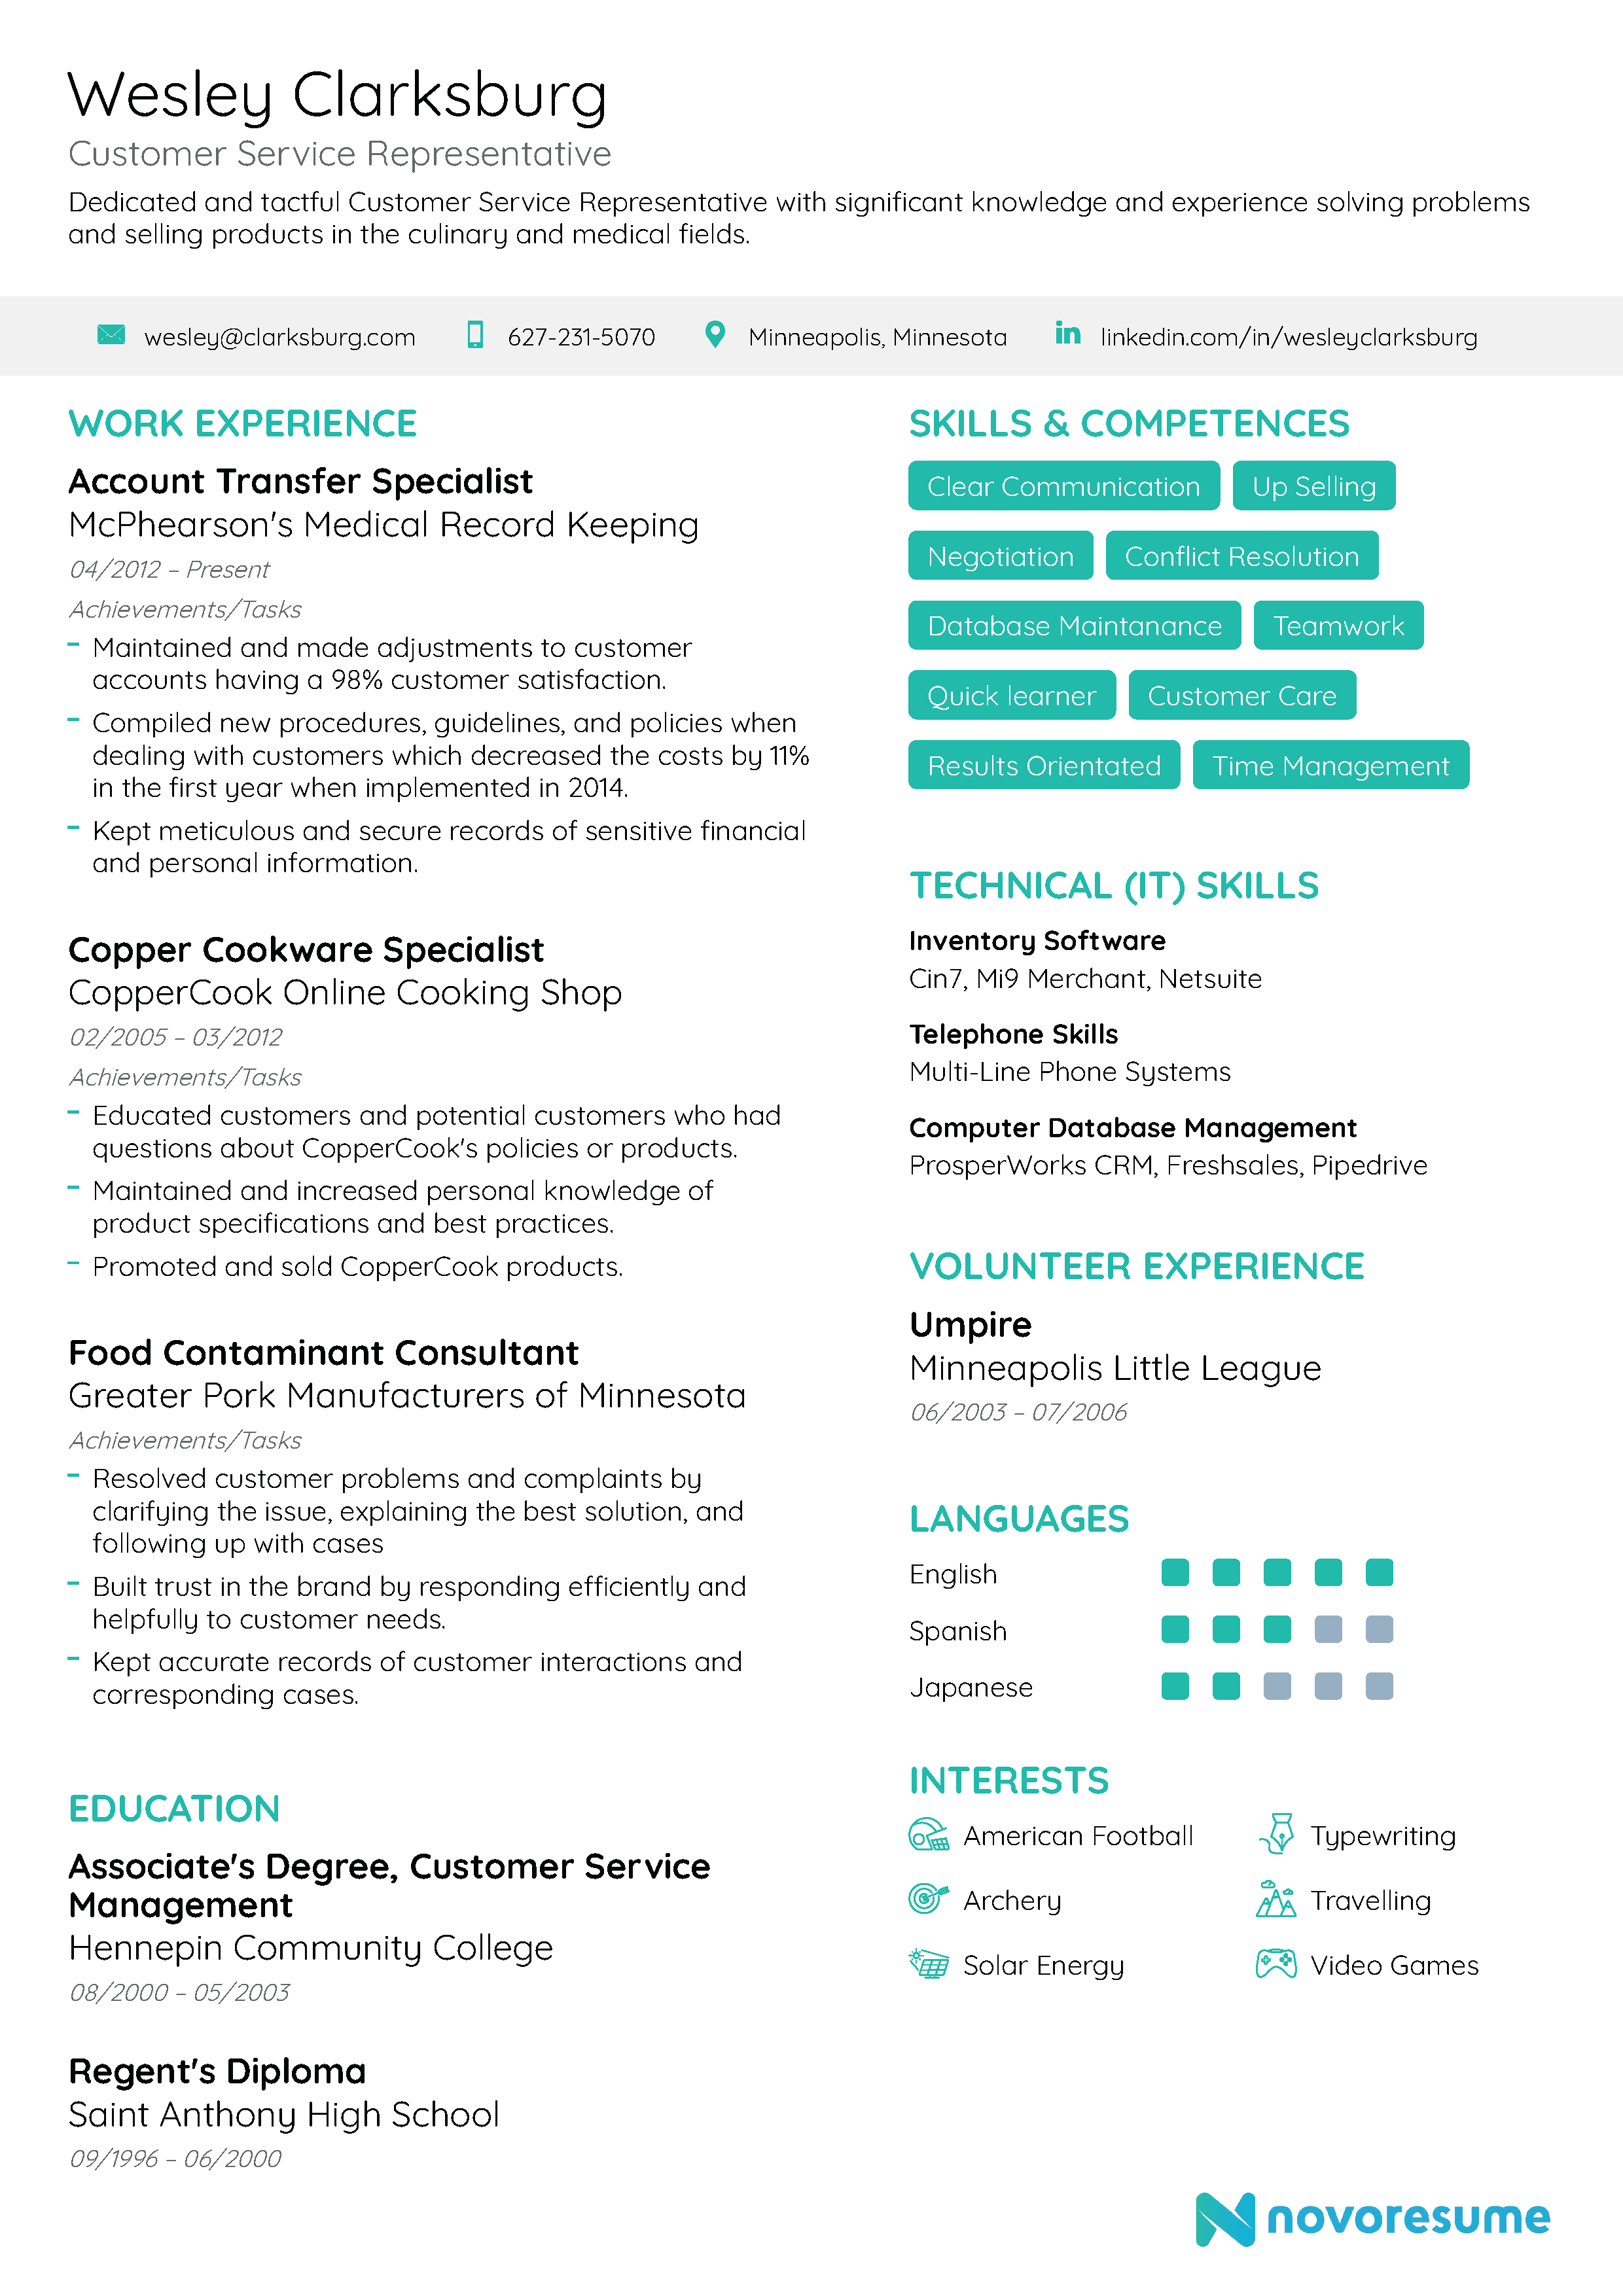 Customer Service Resume [2020] Examples & Guide